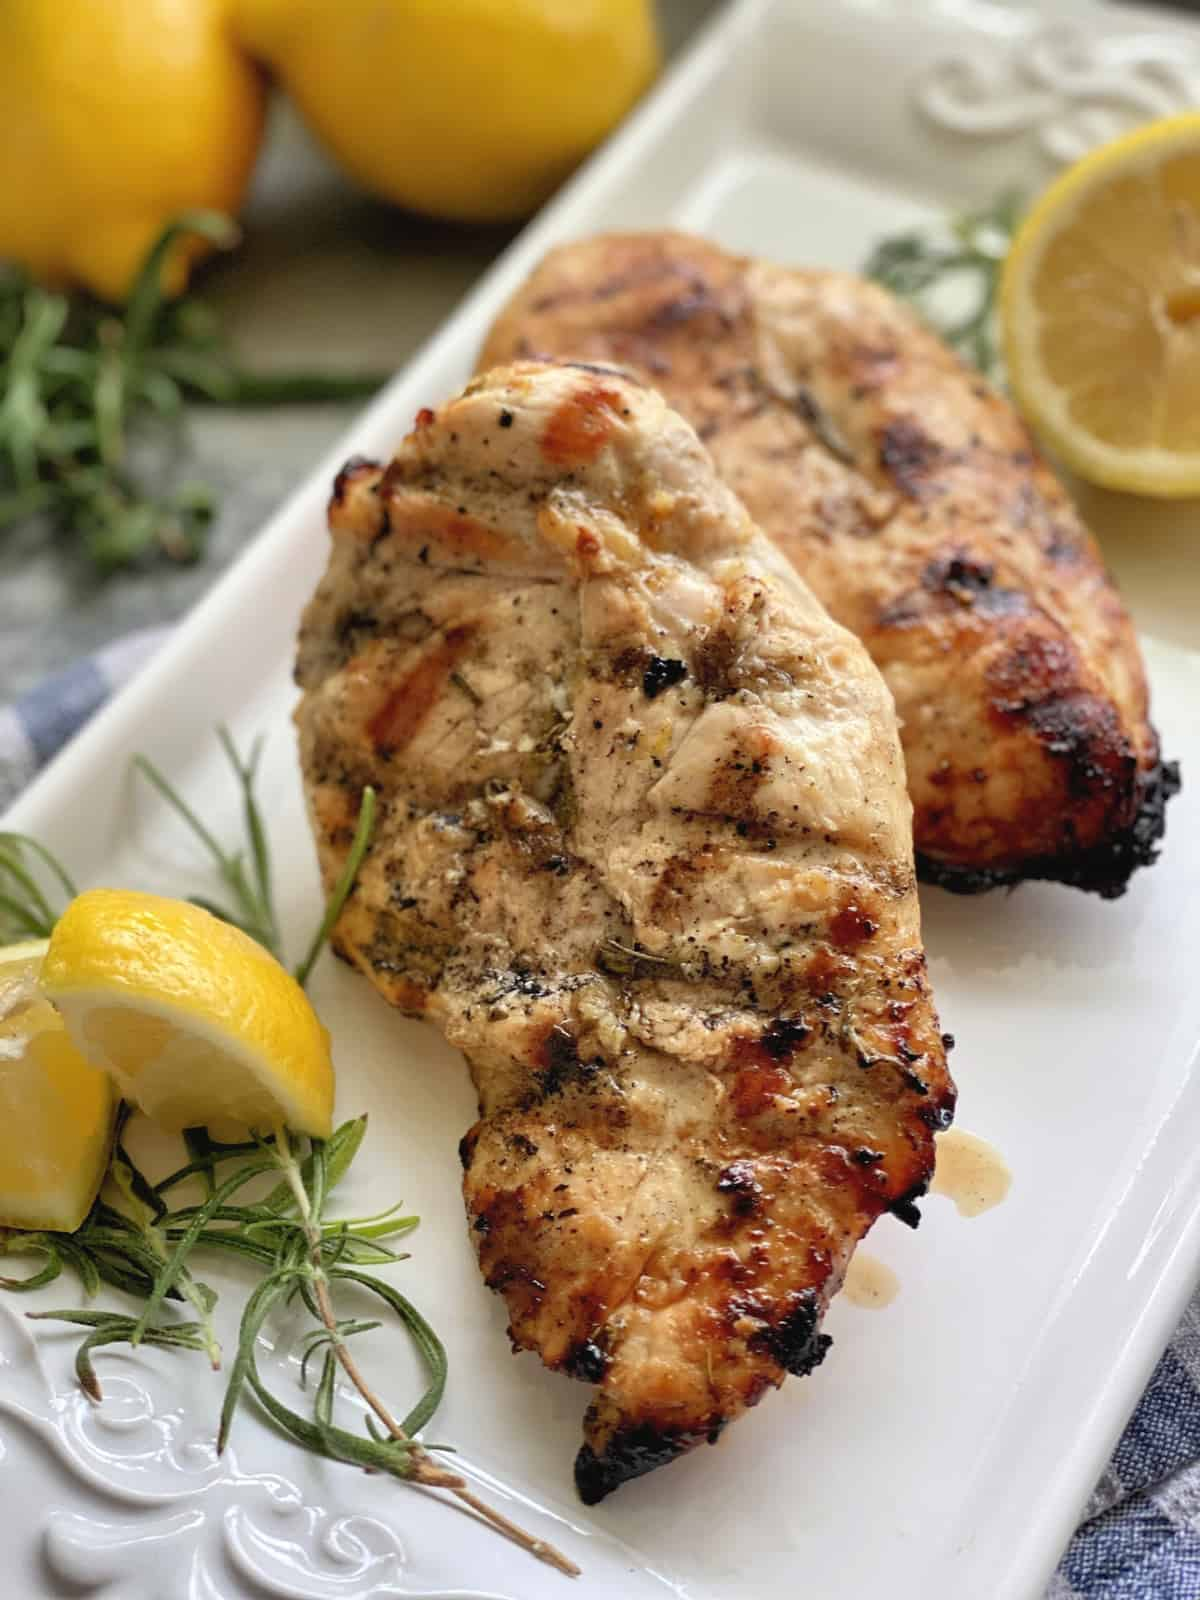 Grilled chicken breast on a white platter with fresh lemon wedges and rosemary sprigs.